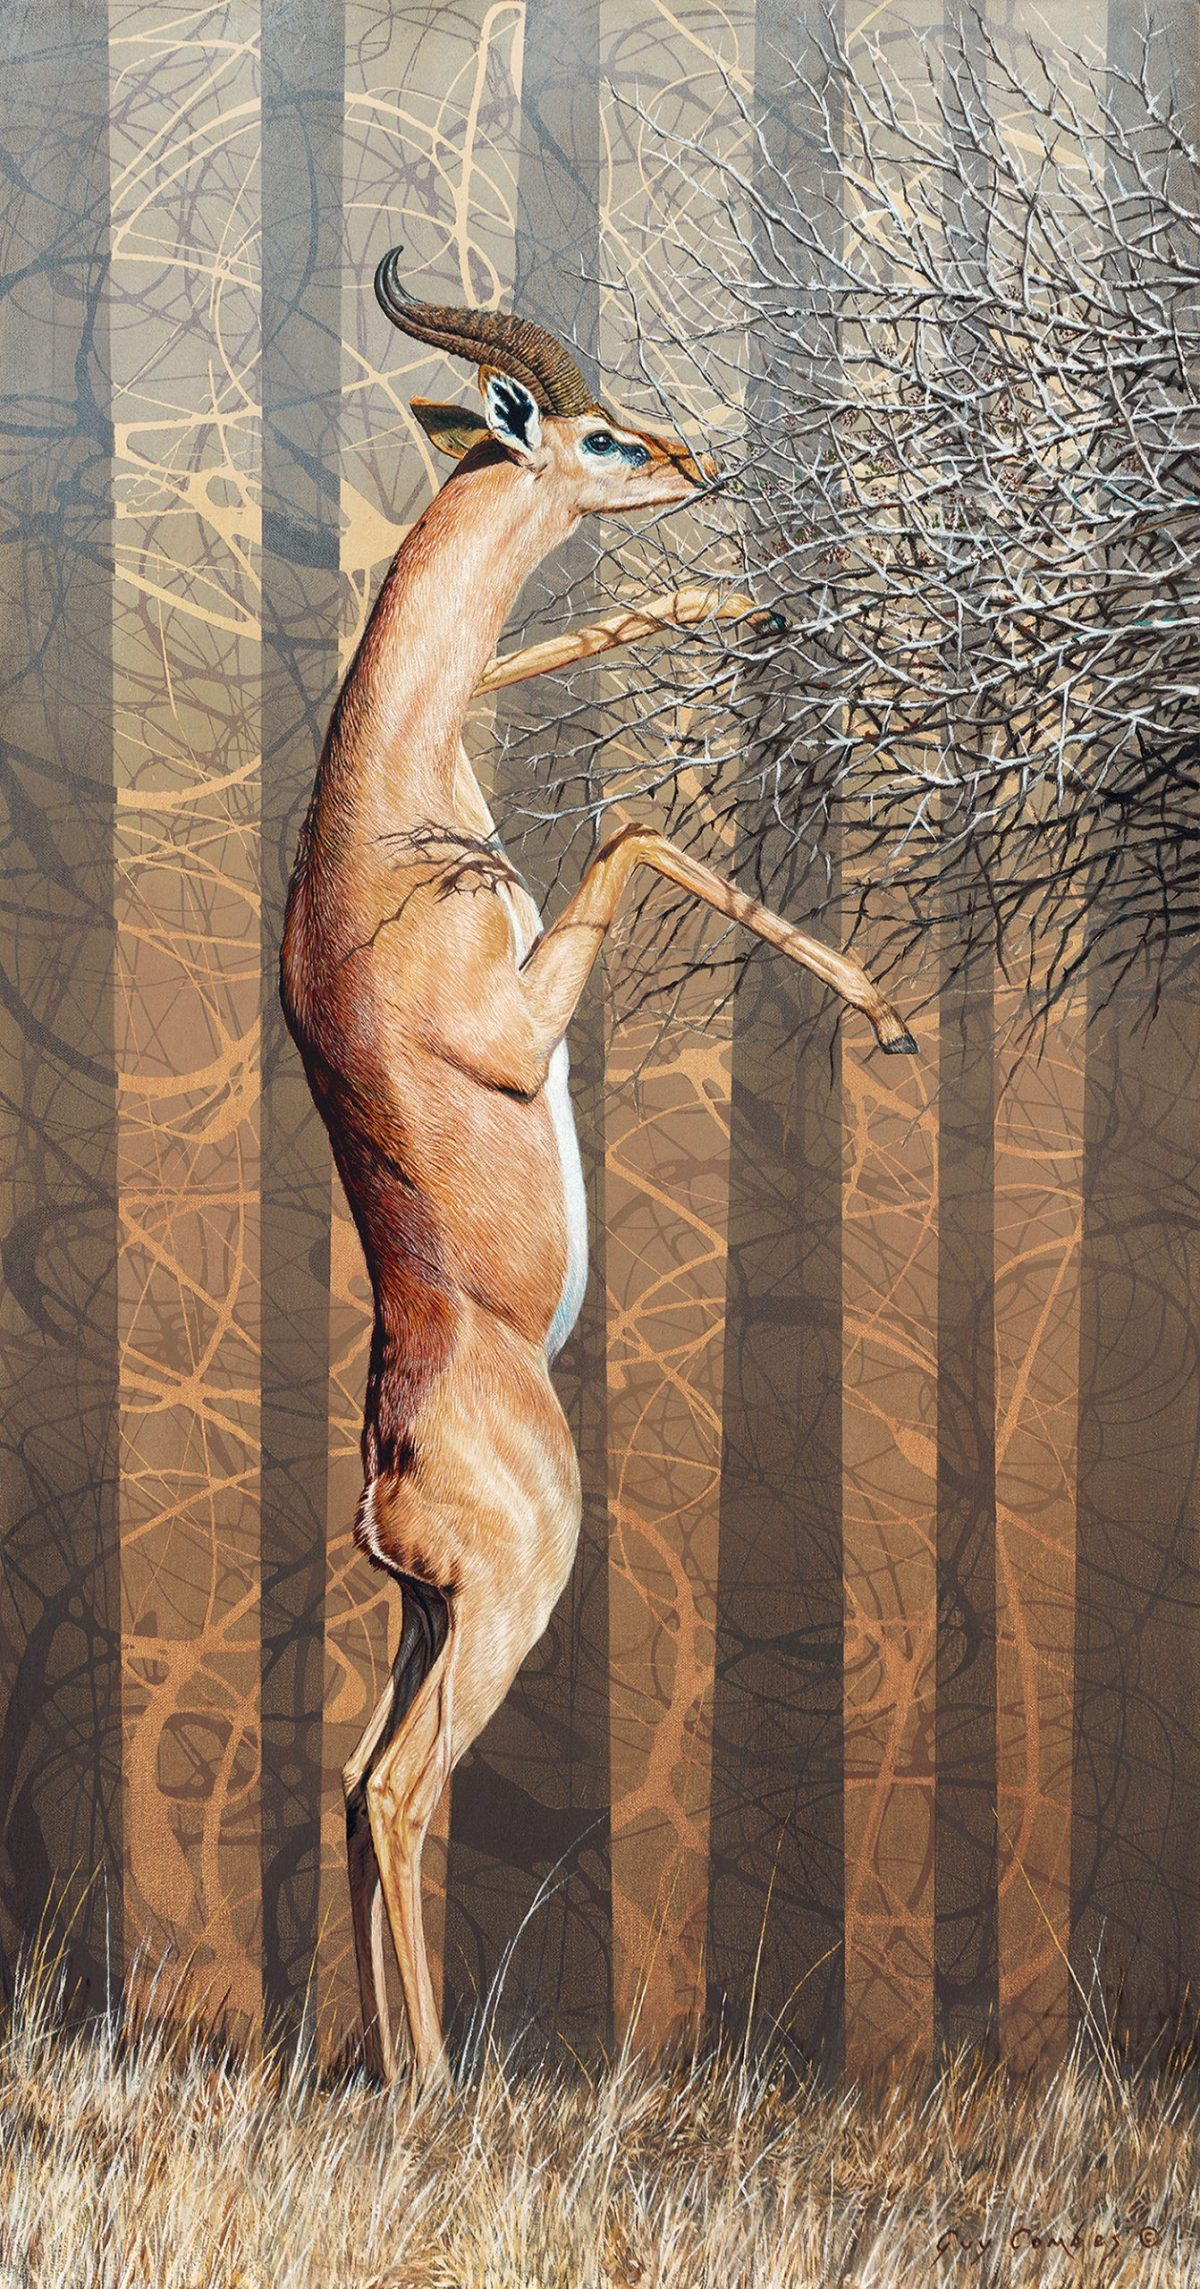 An oil and acrylic painting on canvas of a gerenuk